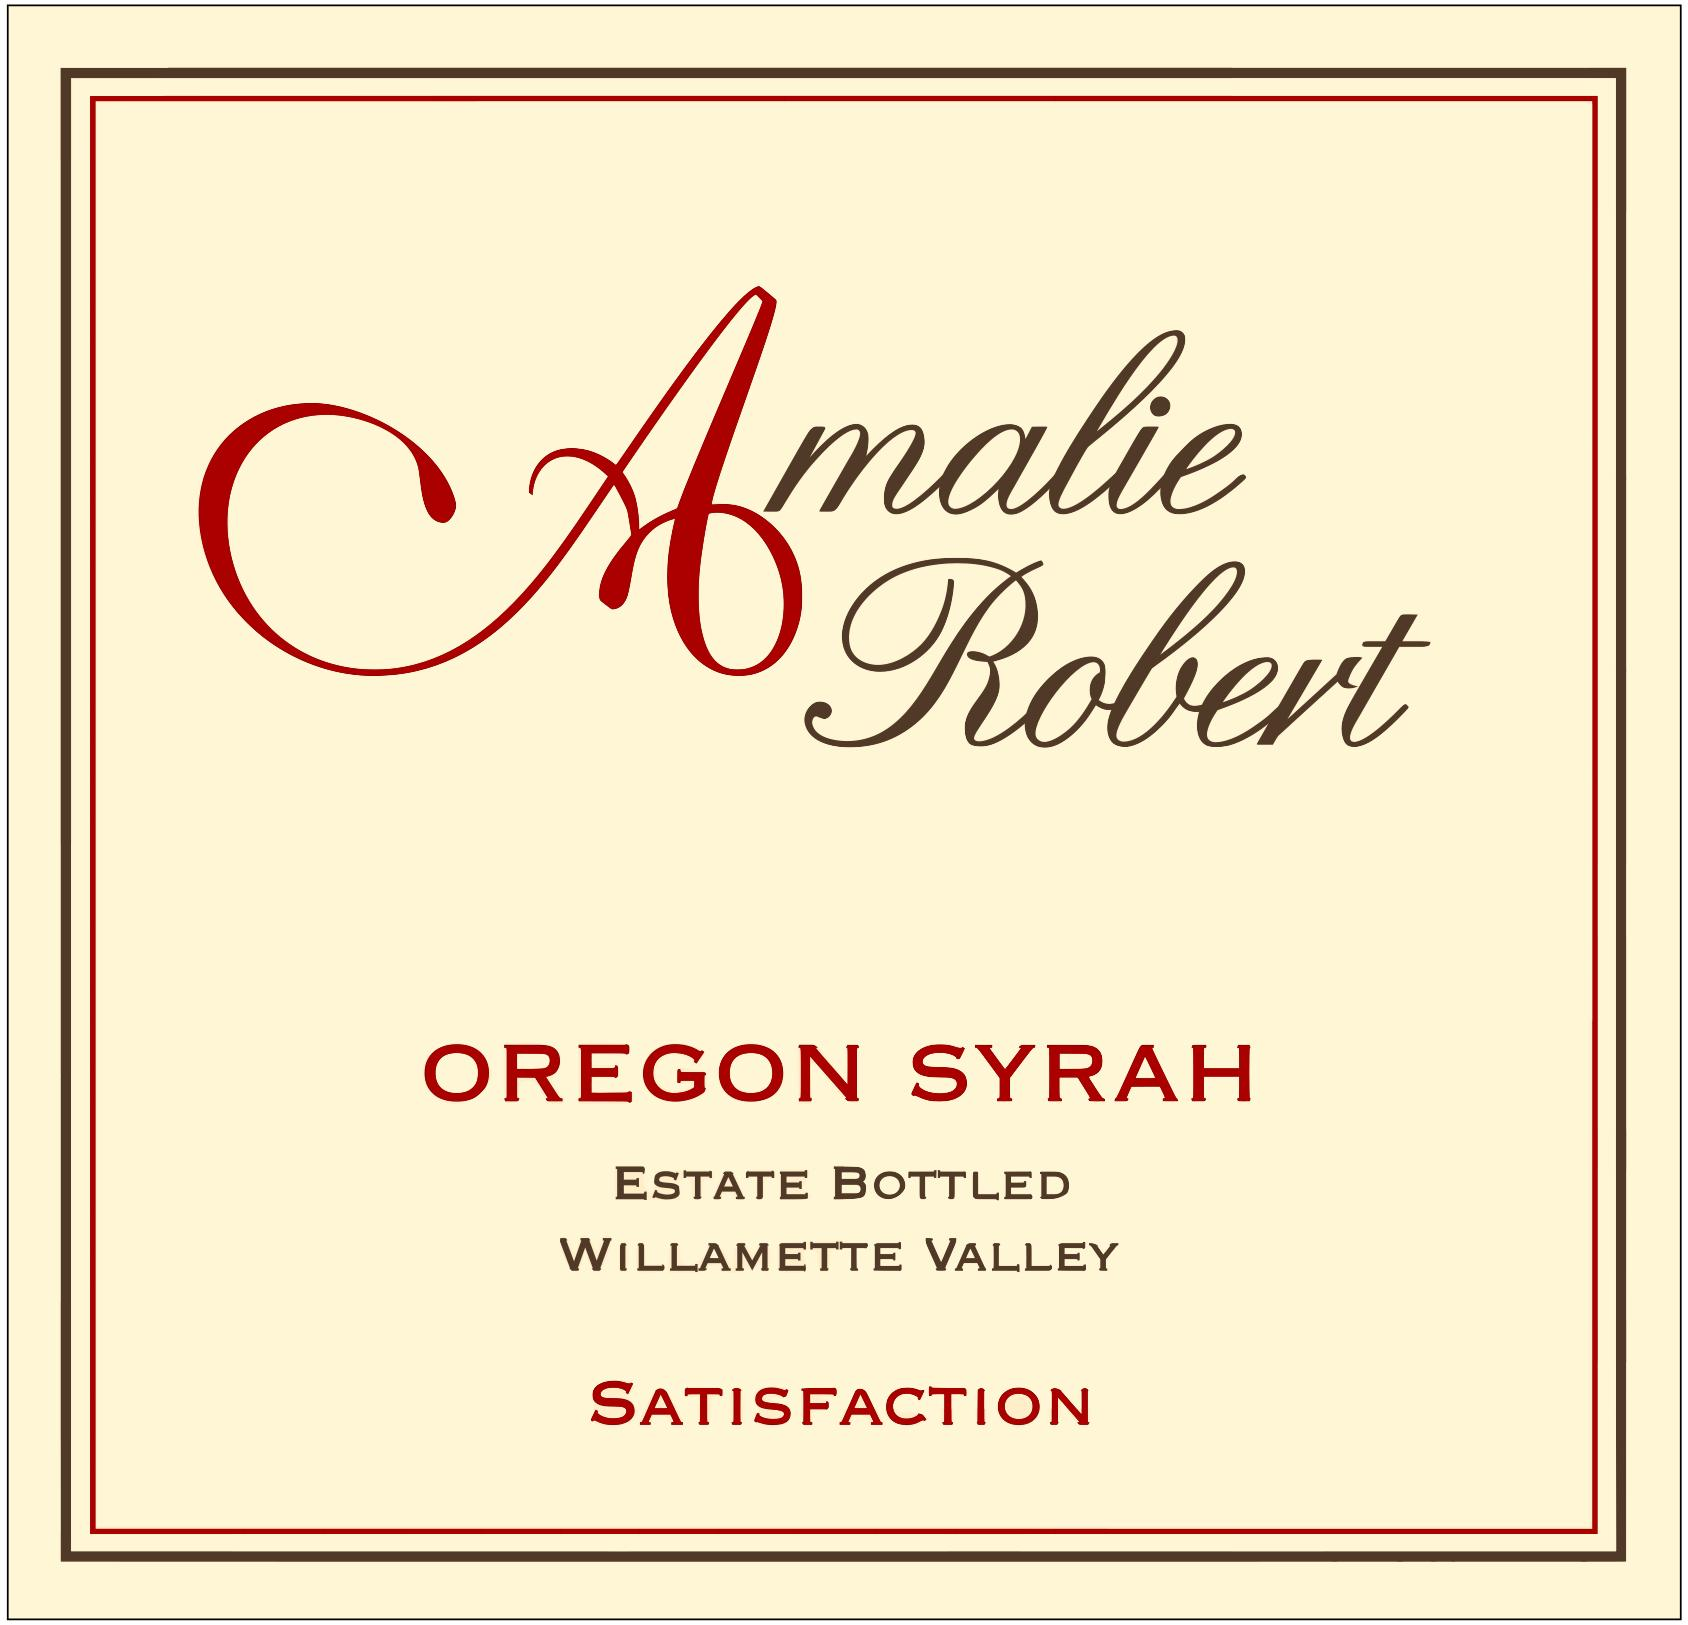 2015 Satisfaction Syrah - 93 pts Vinous THUMBNAIL